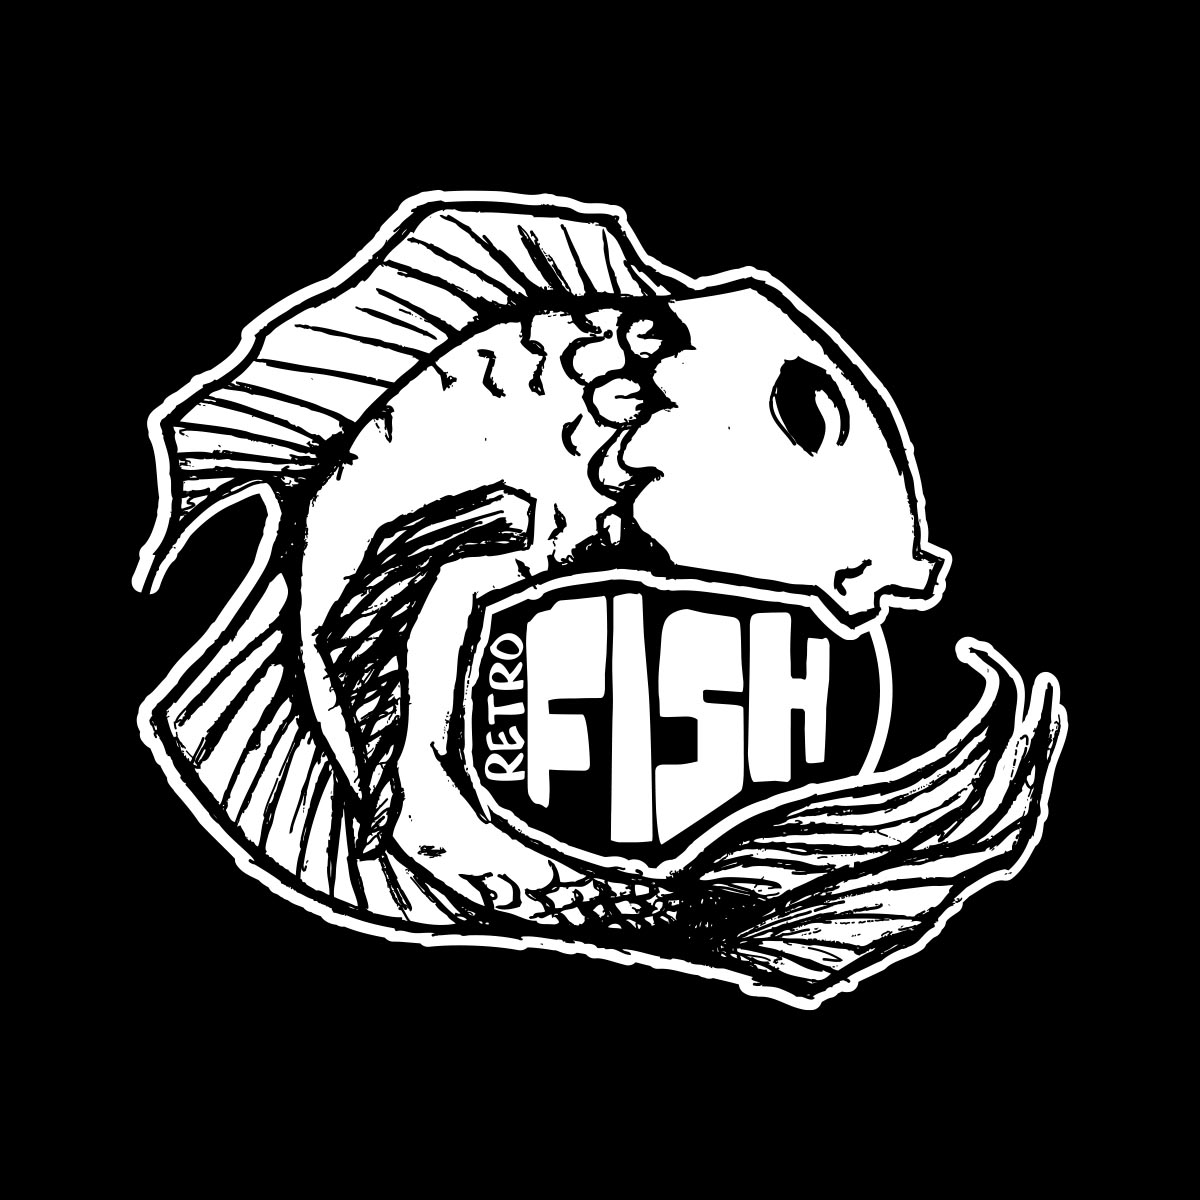 retro fish - A modernized retro fish design that is not a remake; it's designed to perform up to modern expectations in a wide variety of waves and conditions.